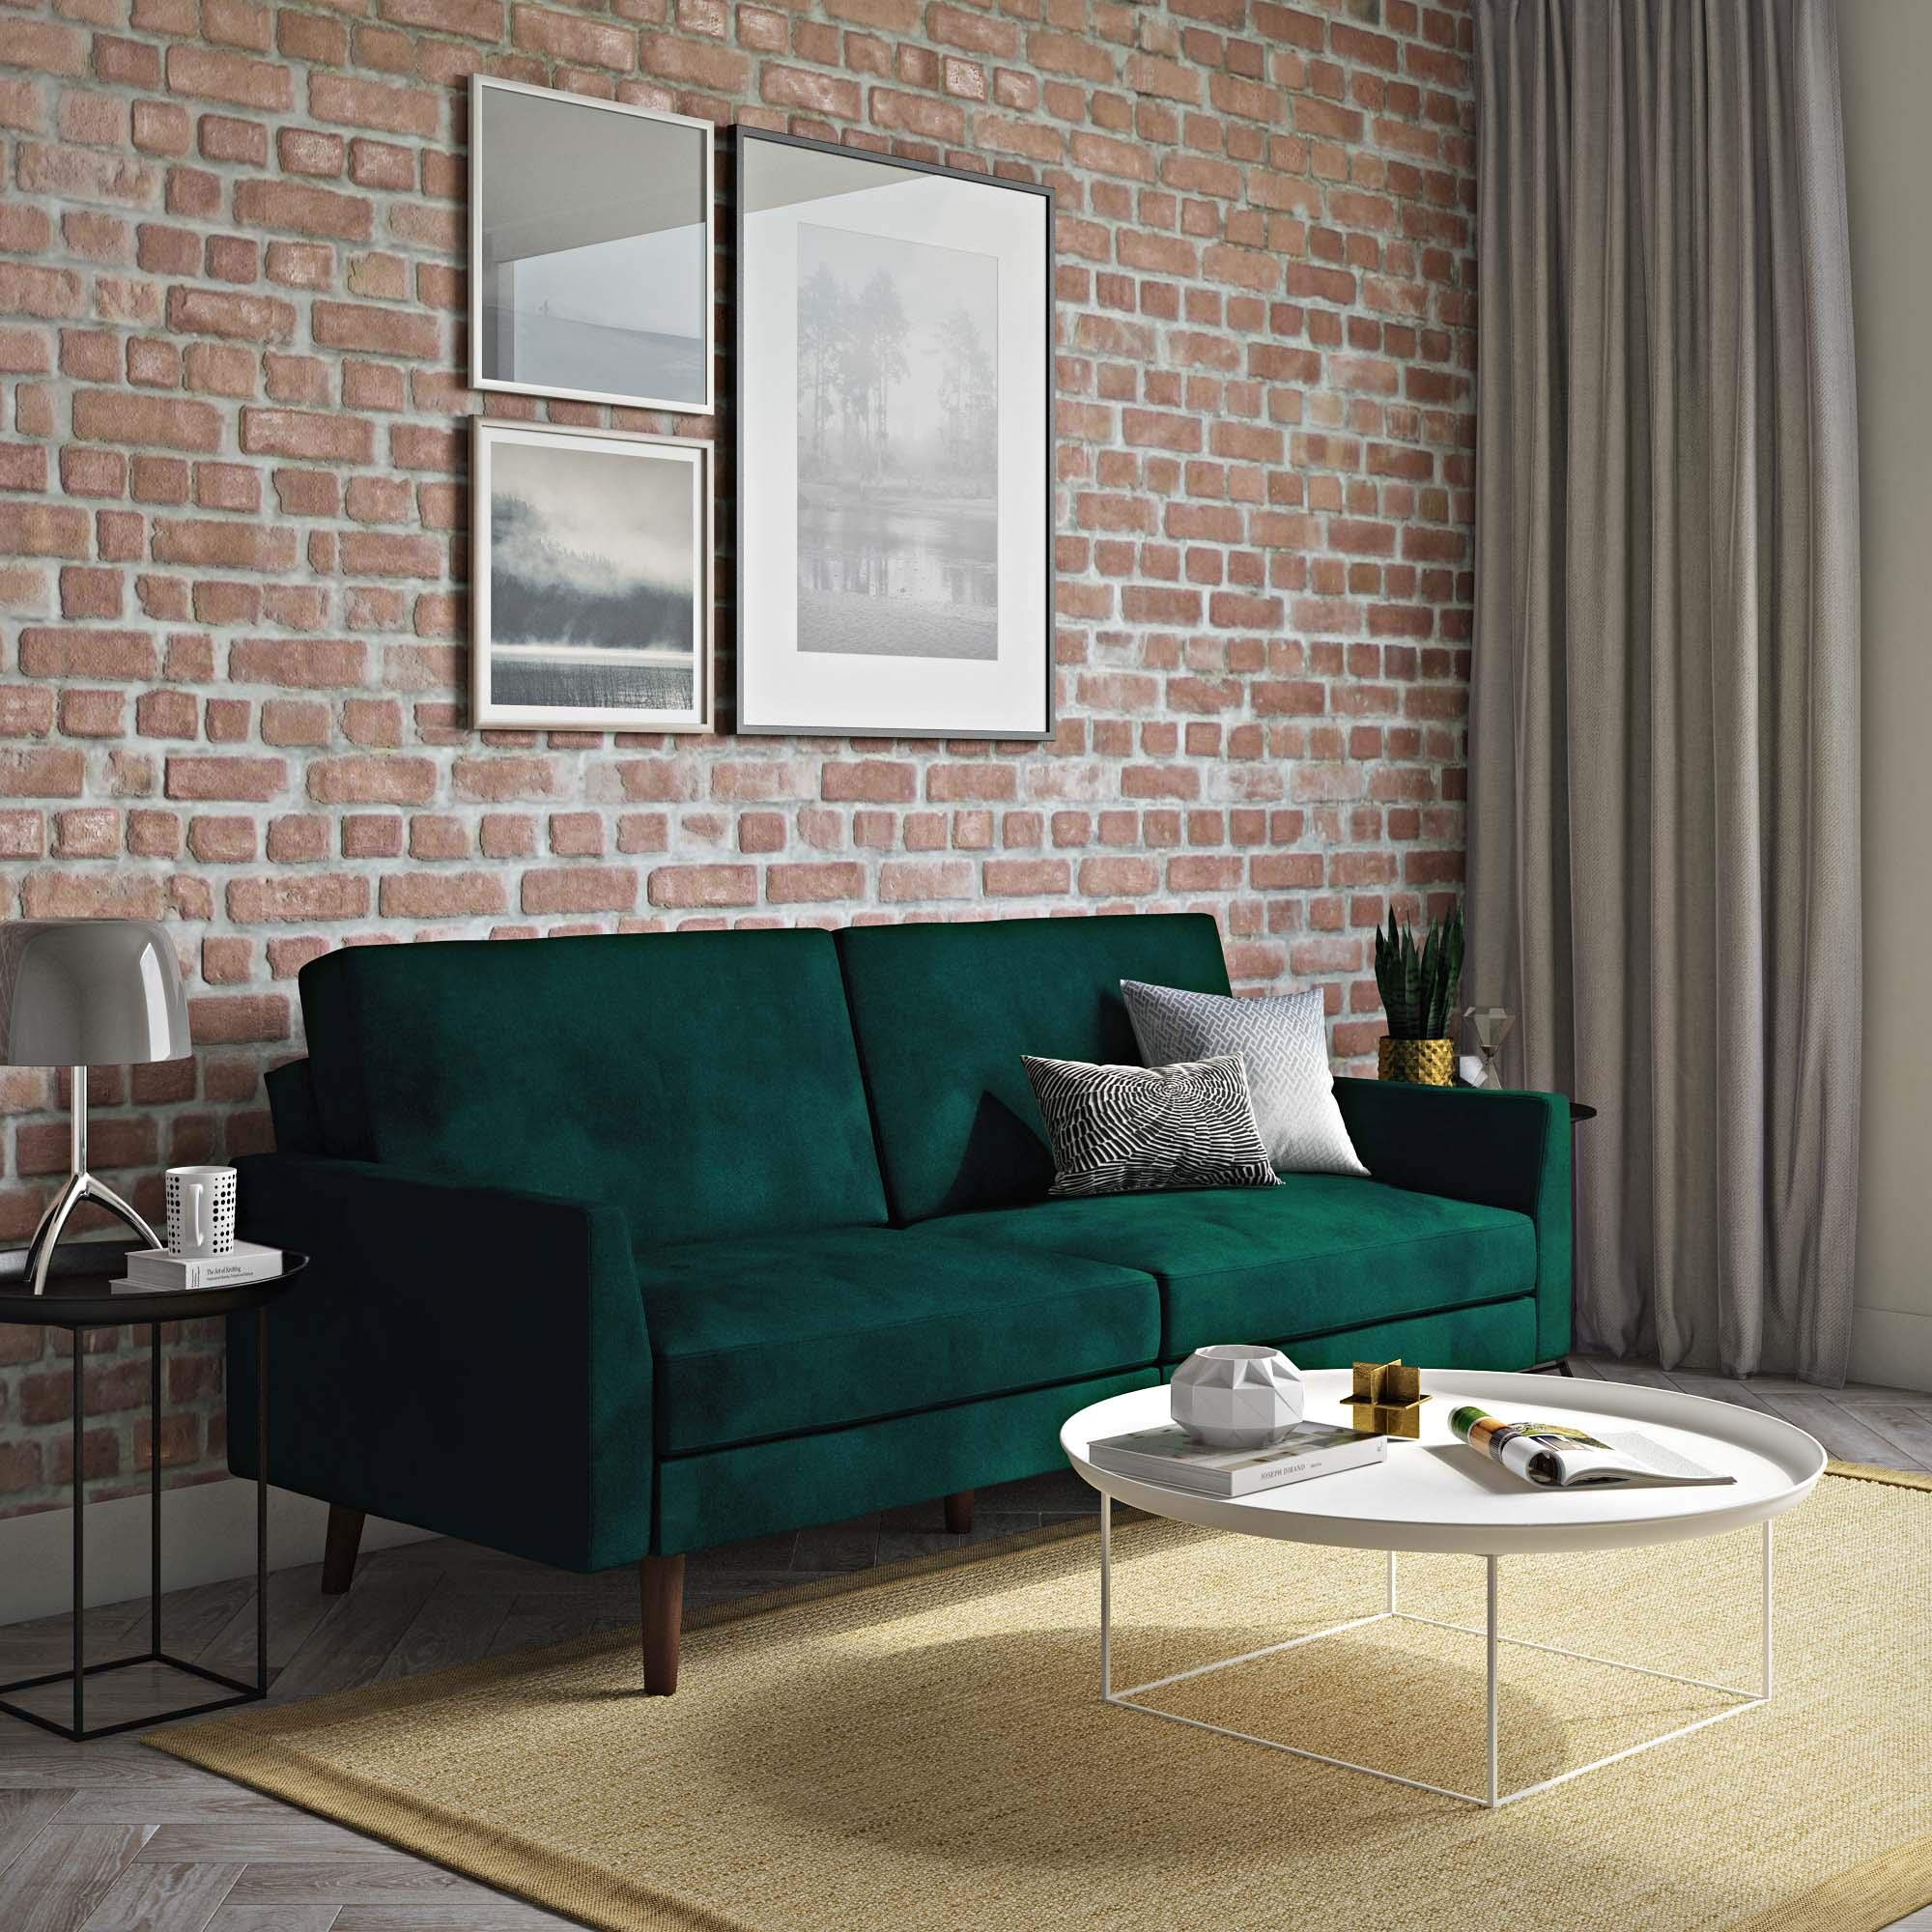 Novogratz The Audrey Futon with Independently Encased Coils and Soft Velvet for Top Comfort, Green Velvet by Novogratz